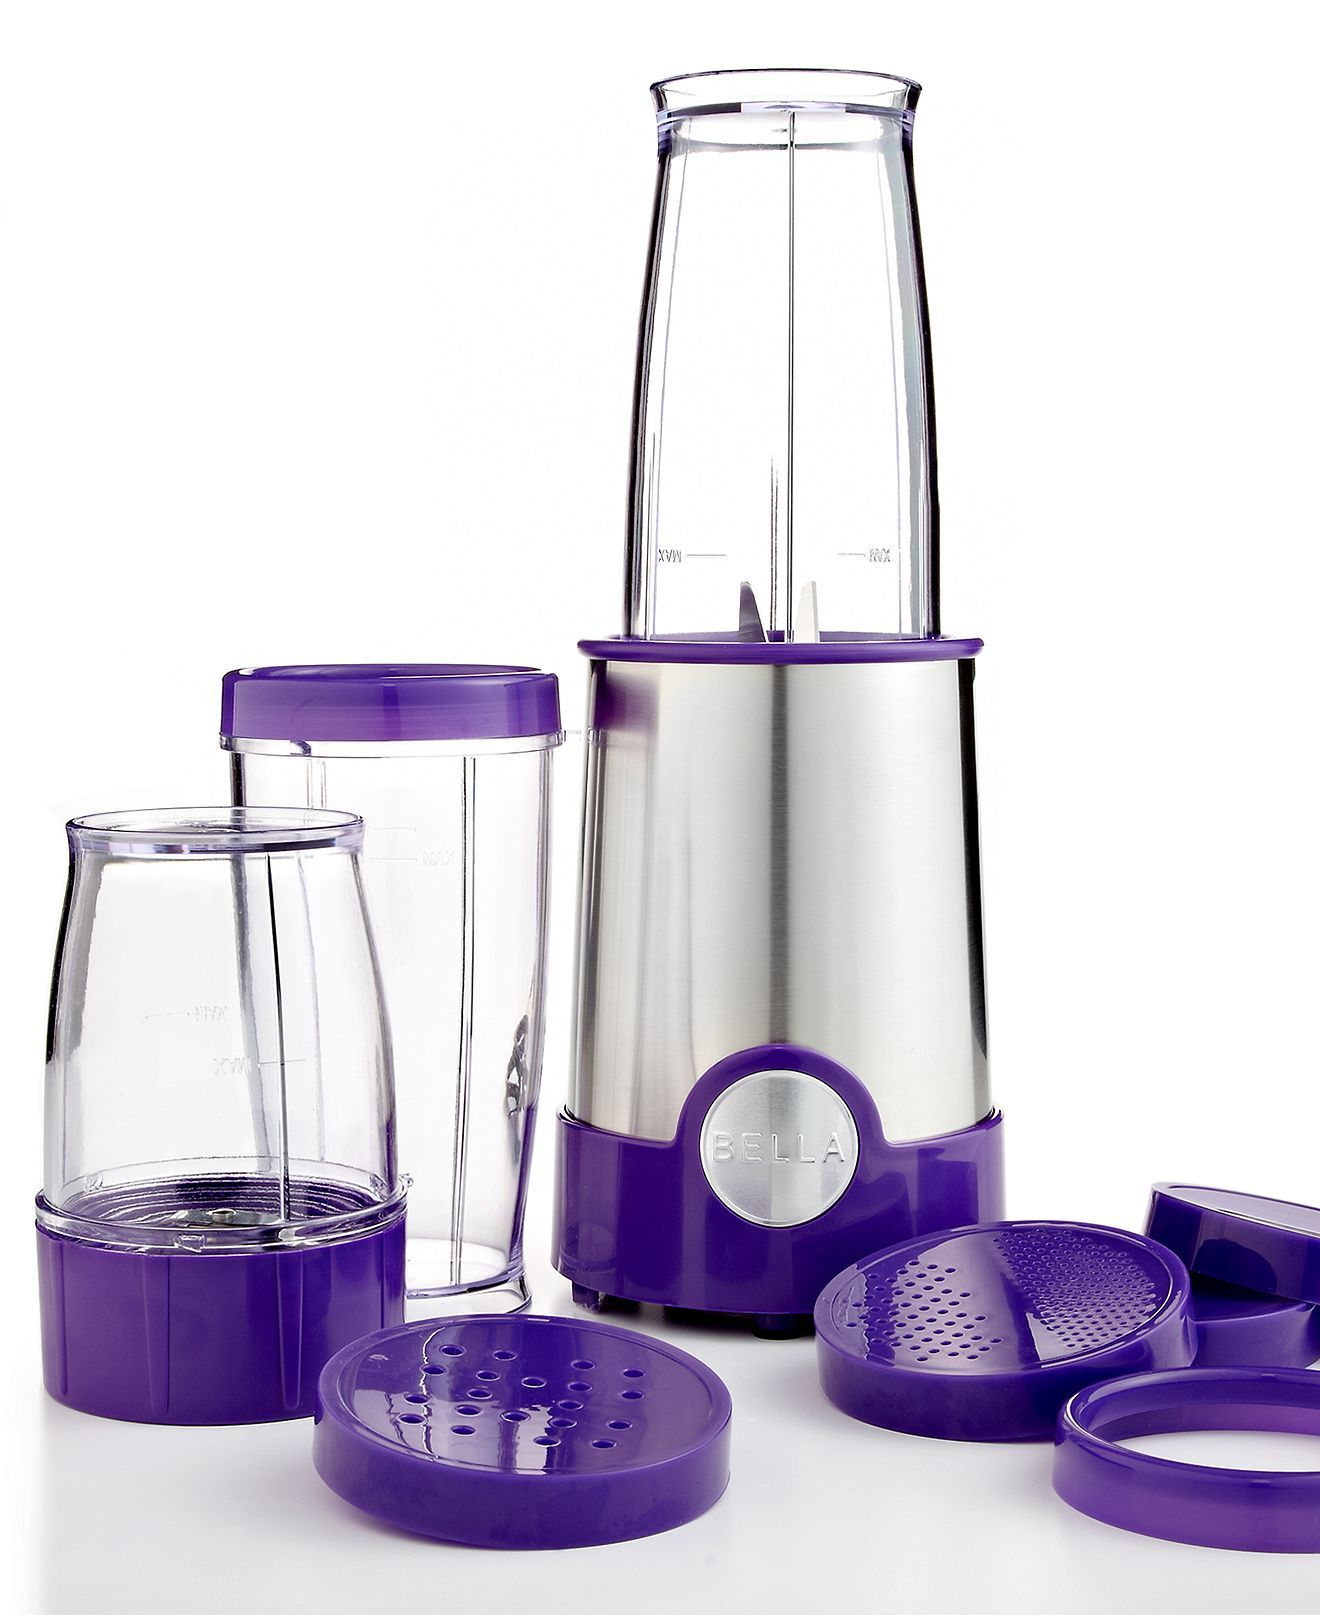 Bella Rocket Blender, 12 Pieces - Electrics - Kitchen ...